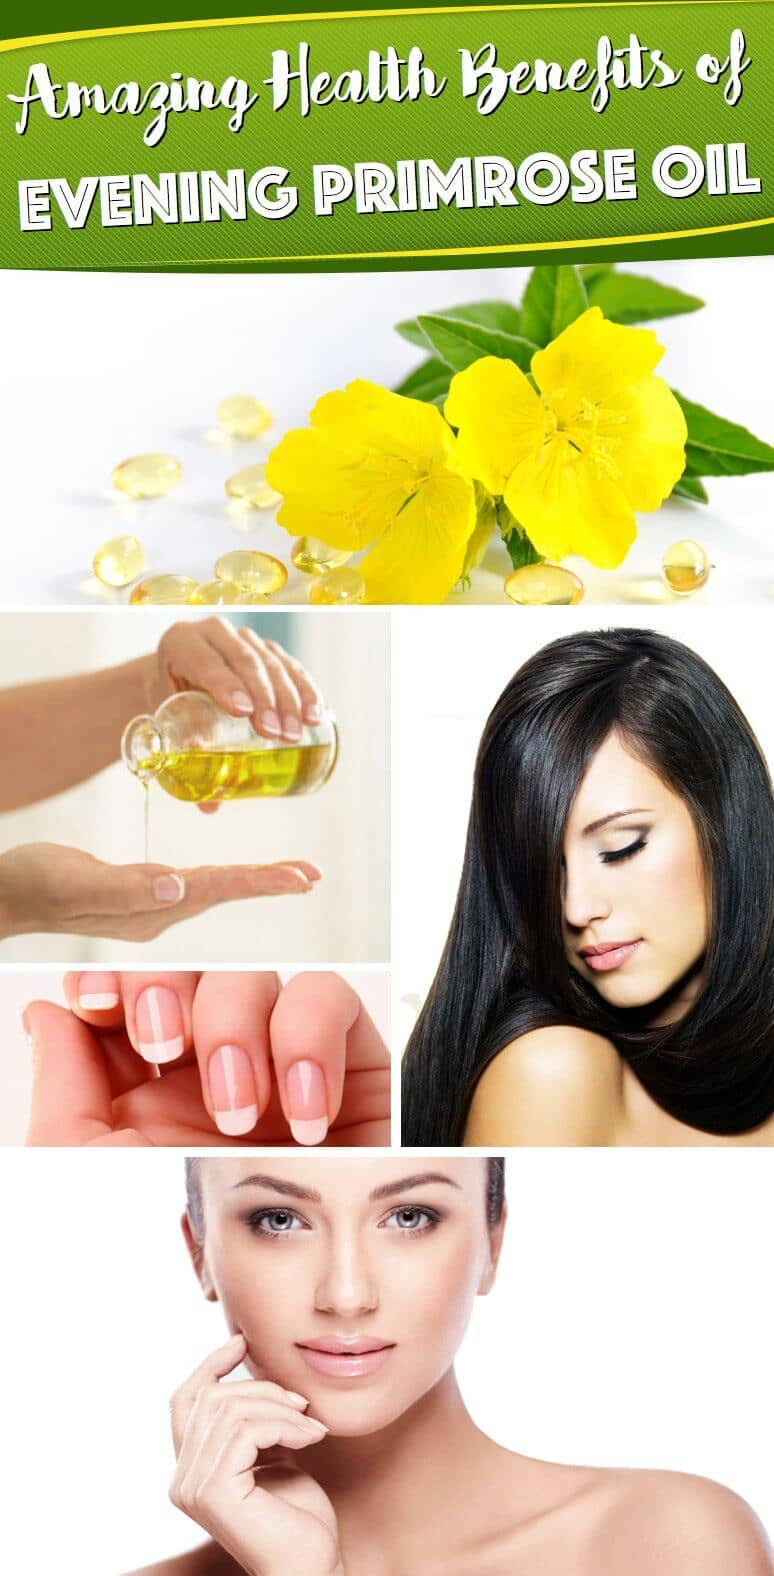 Benefits of Primrose Oil